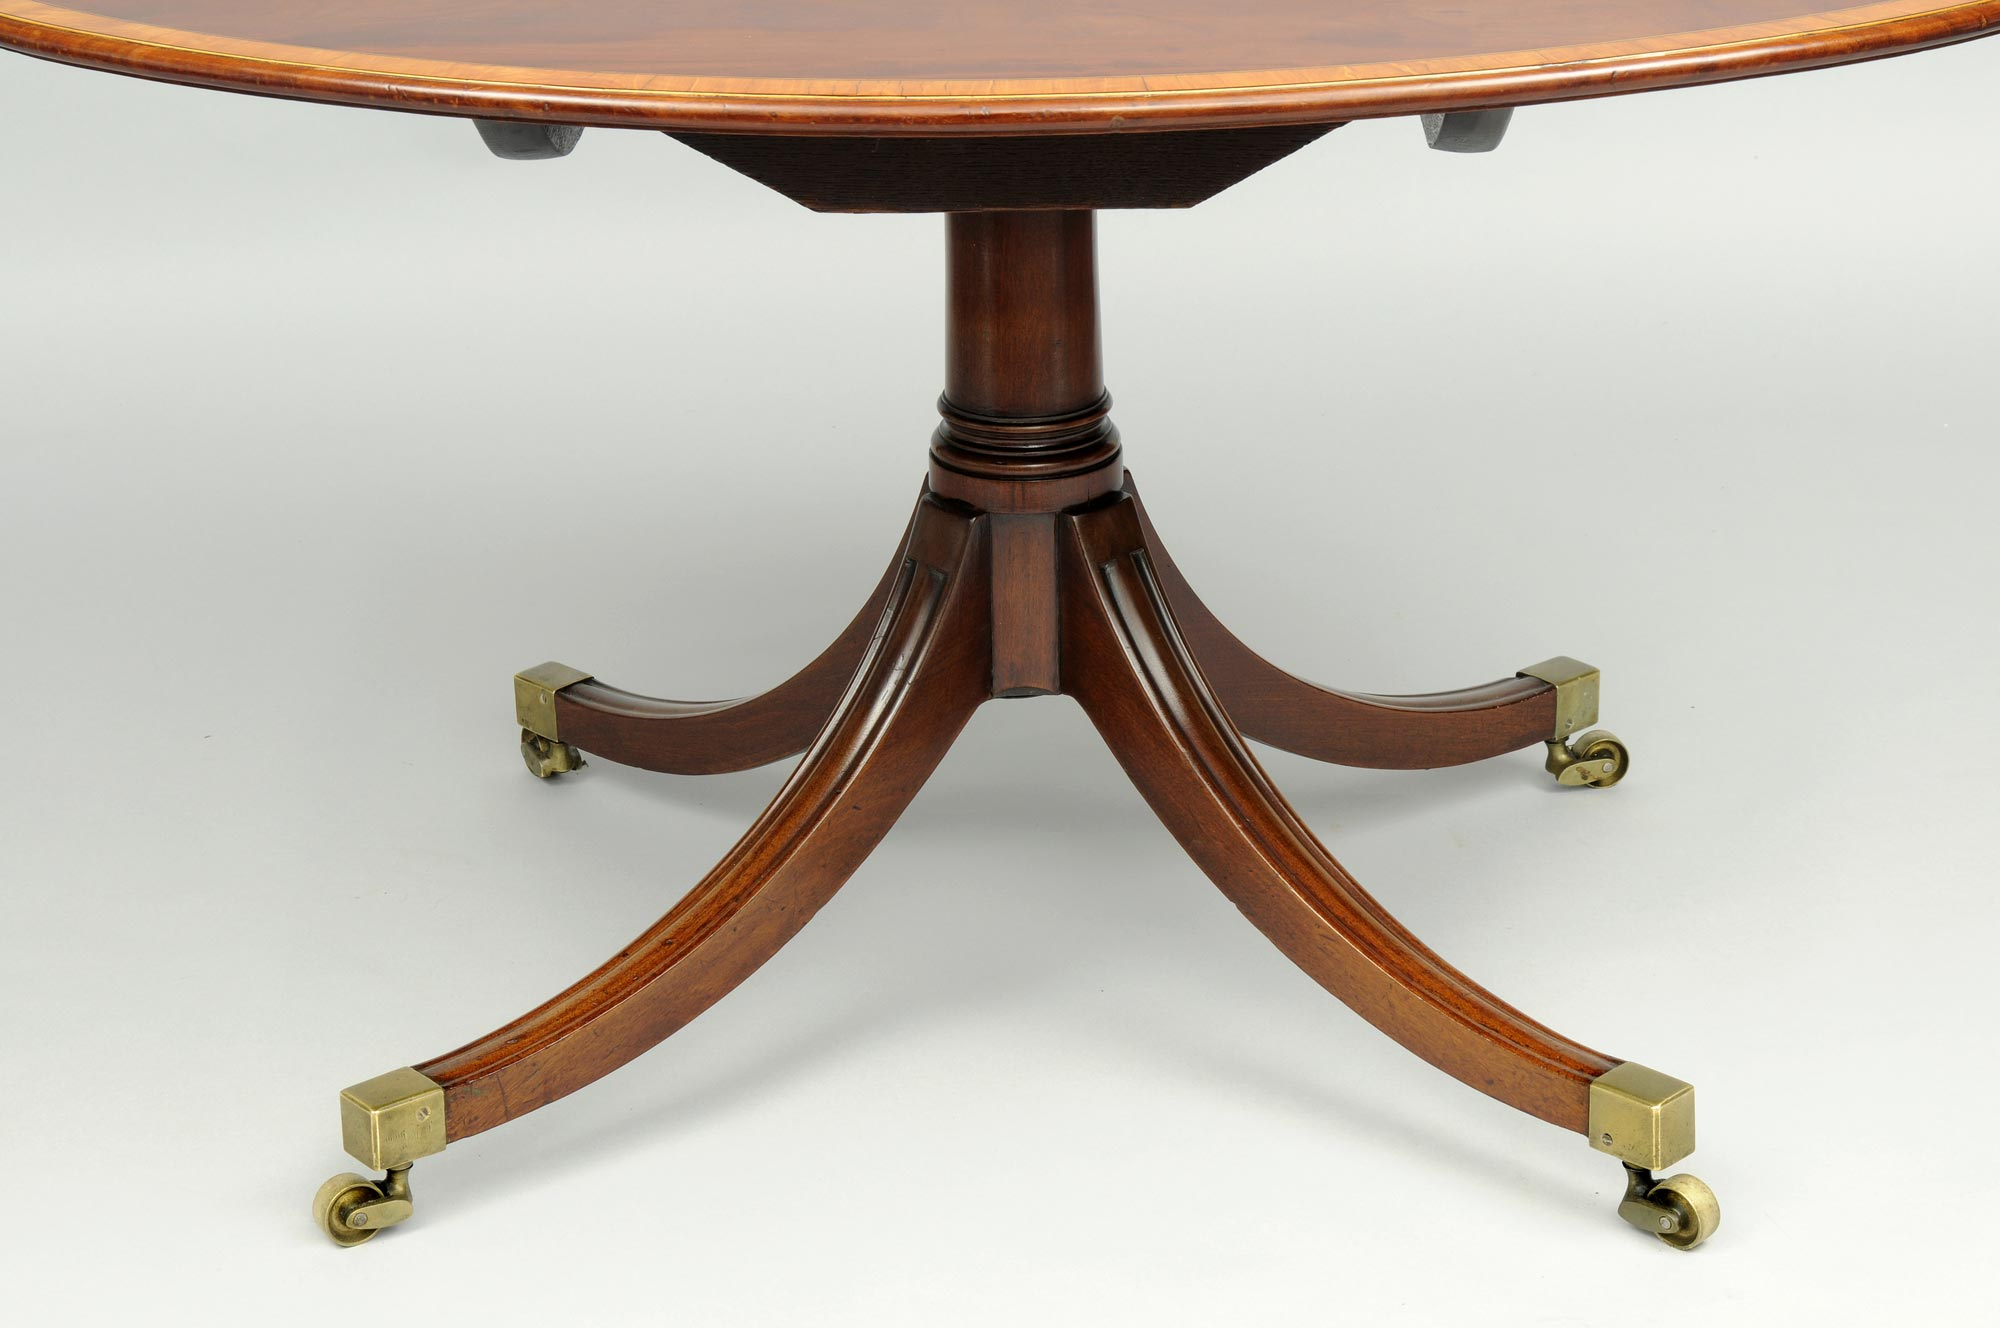 Antique Oval Center Tables Sheraton Period Oval Center Table